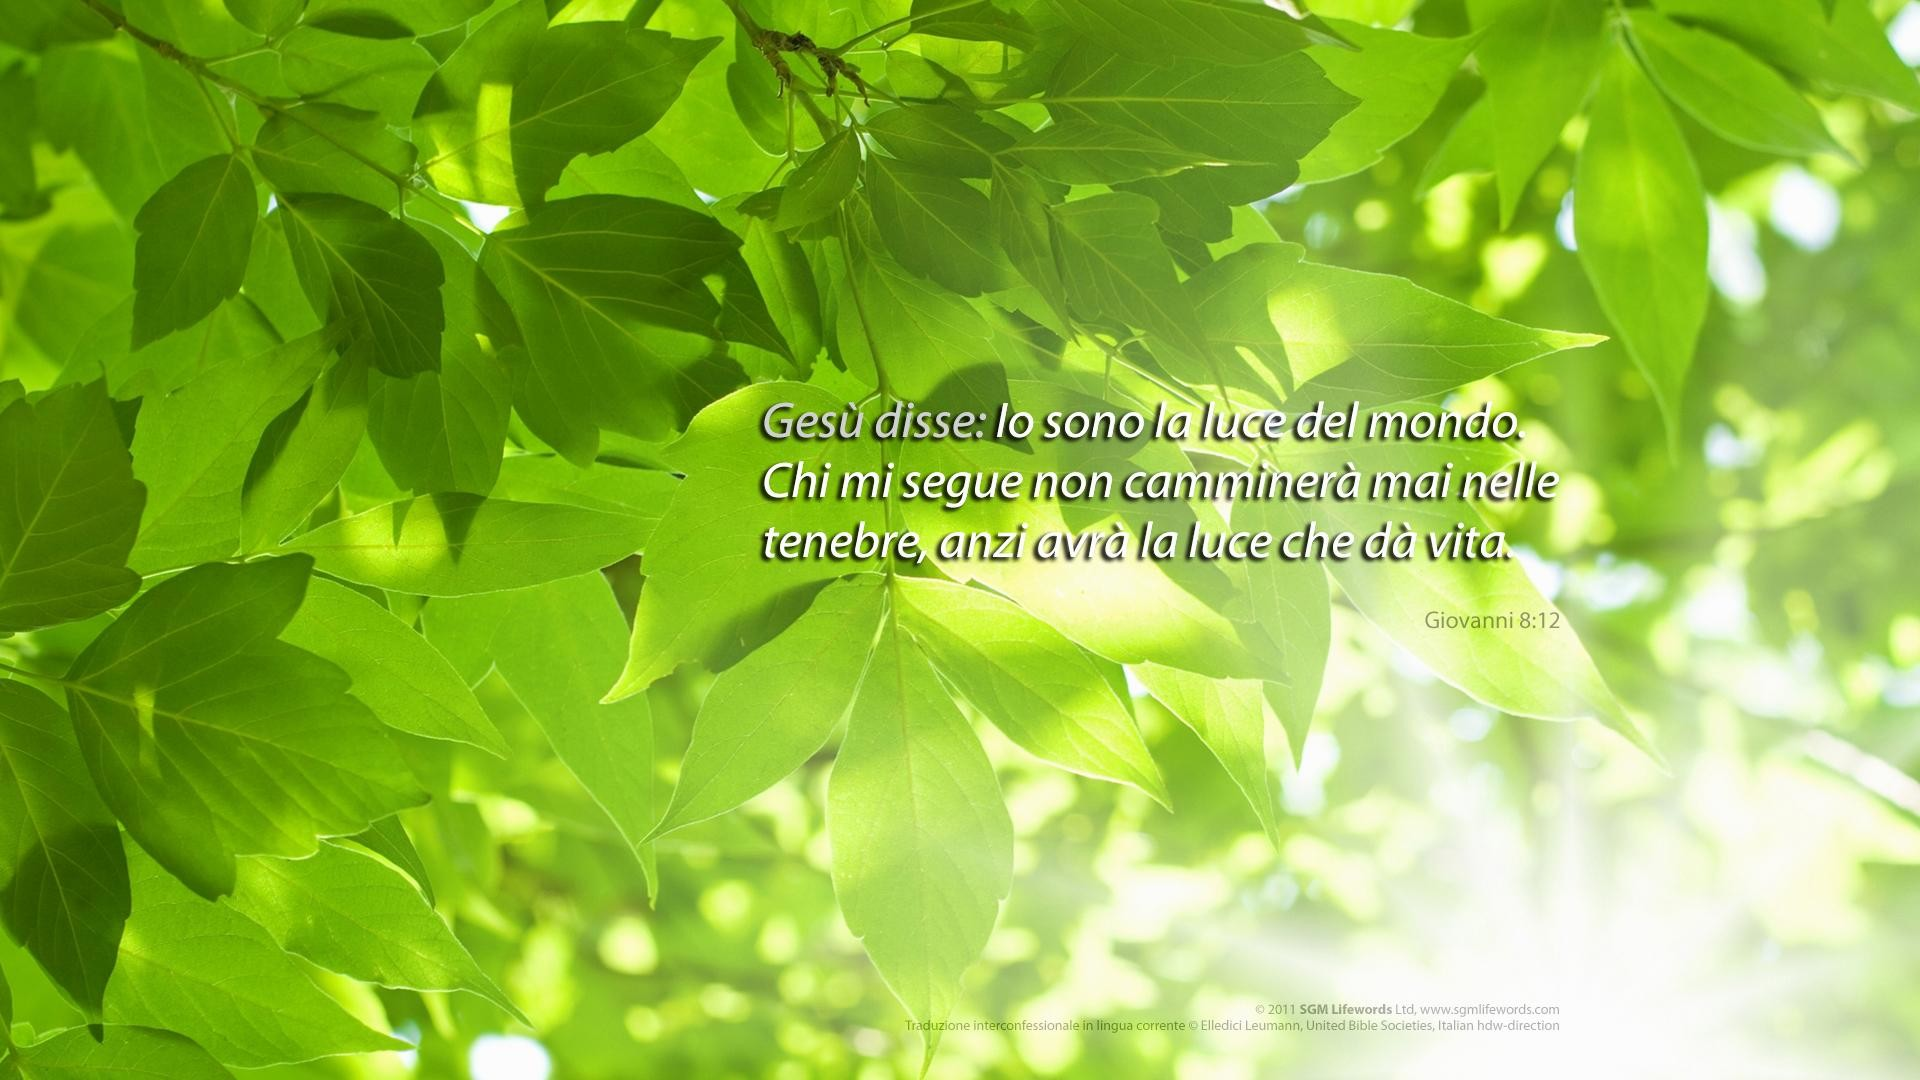 Jesus Wallpaper With Quotes In Tamil Bible Verse Pictures Wallpaper 58 Images